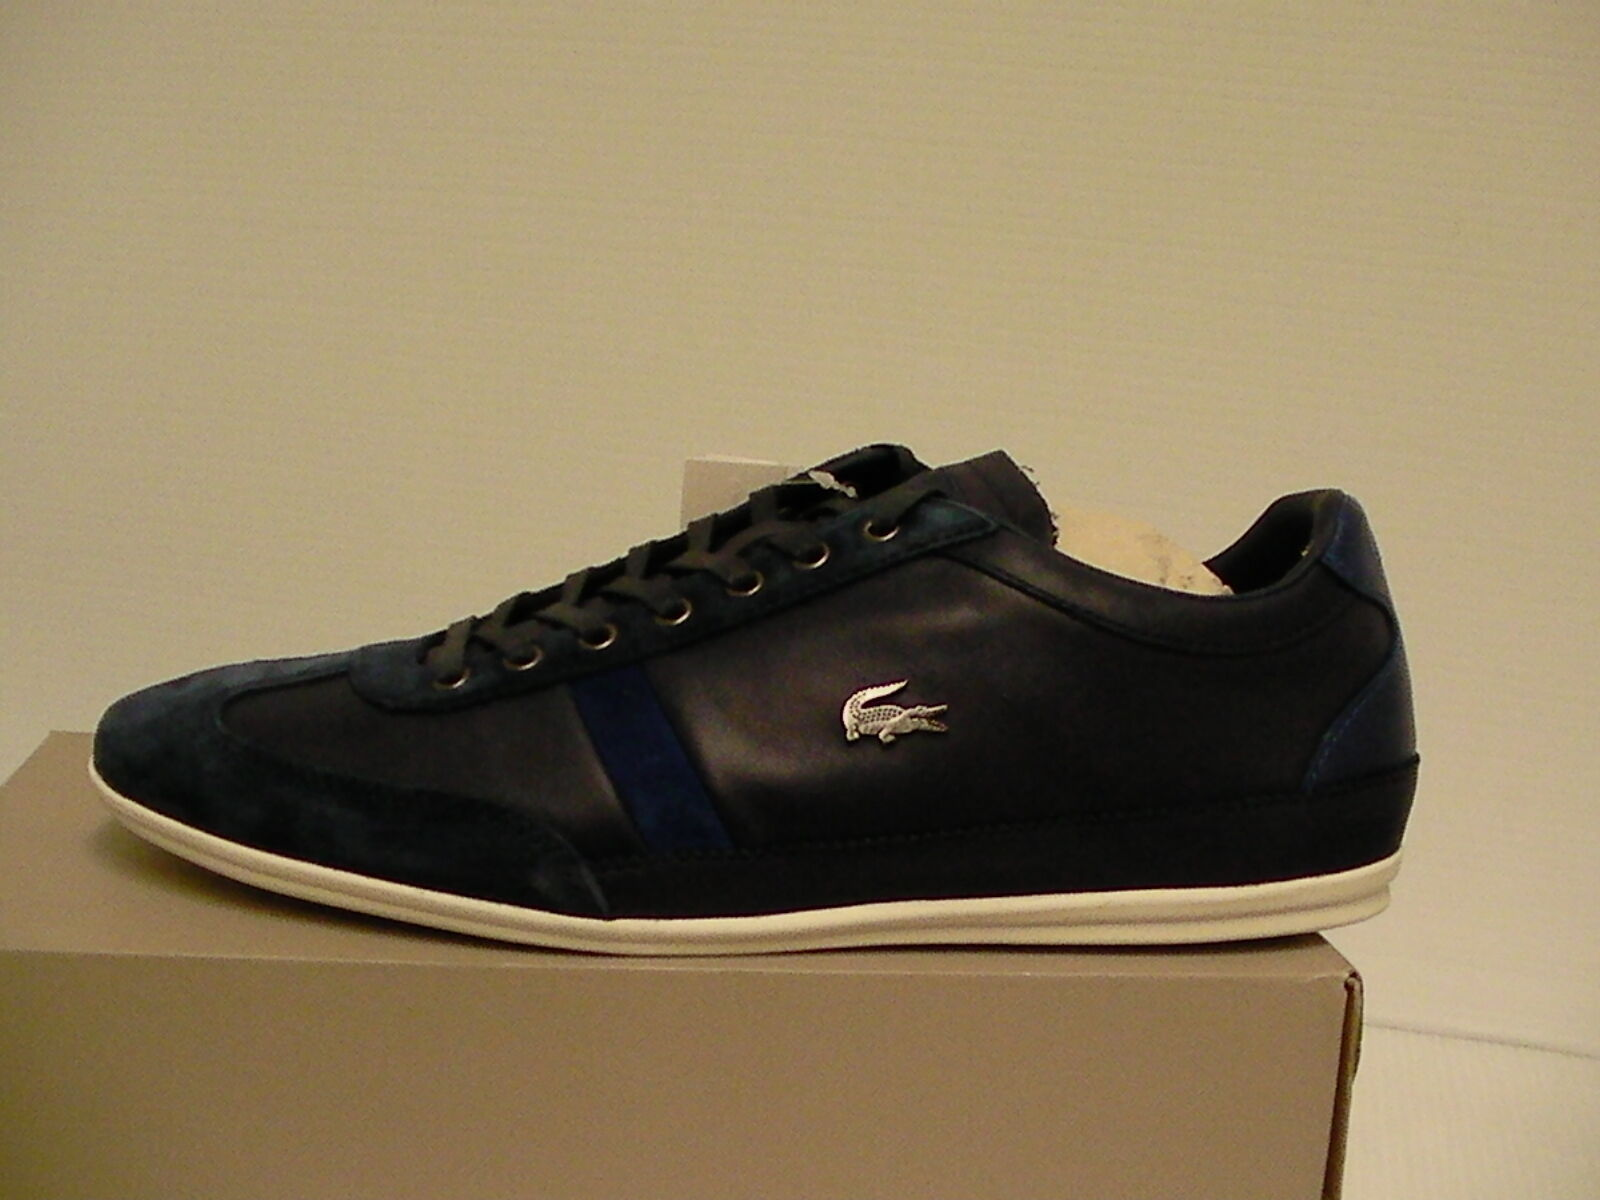 Scarpe casual da uomo  Lacoste casual shoes Misano 33 spm dark blue leather/suede size 10.5 us